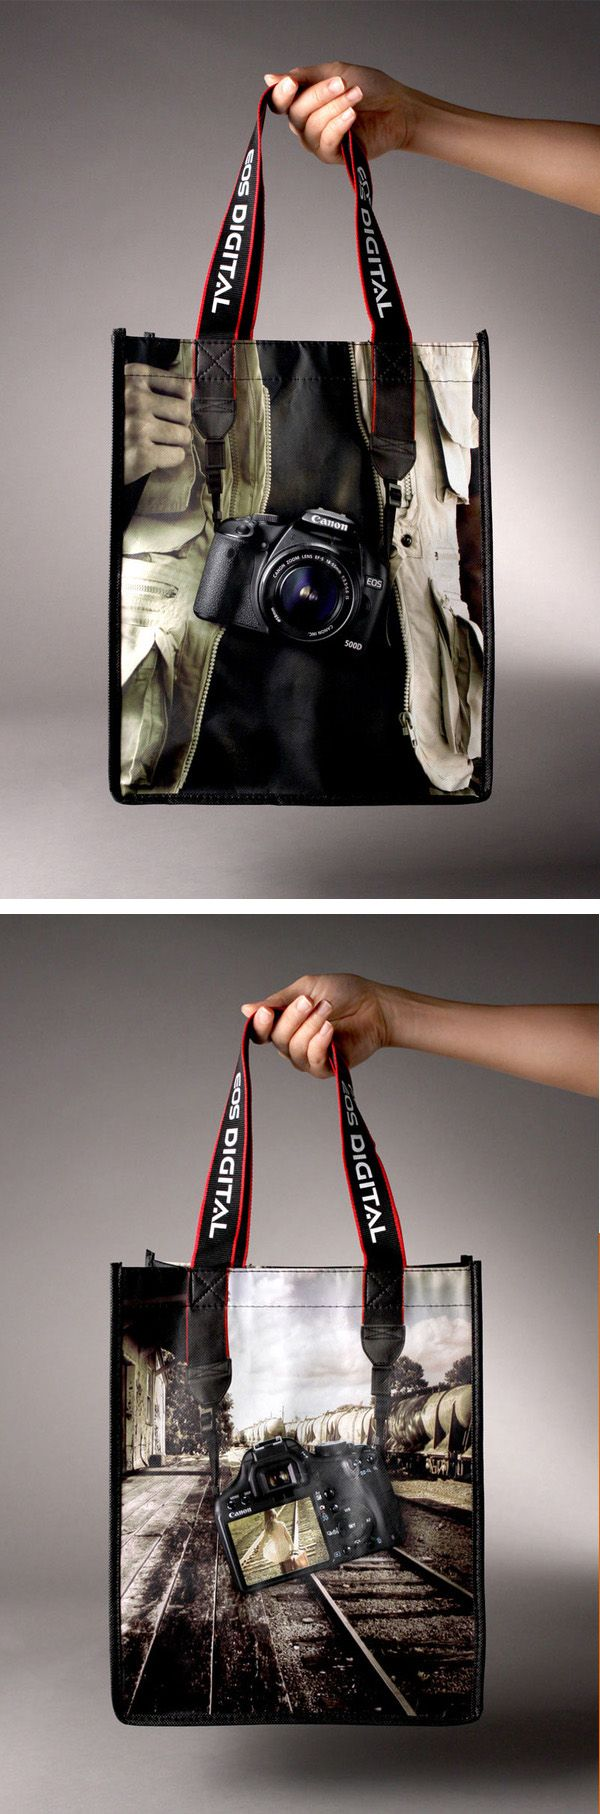 Great combination of a bag design using the handles as part of the motif